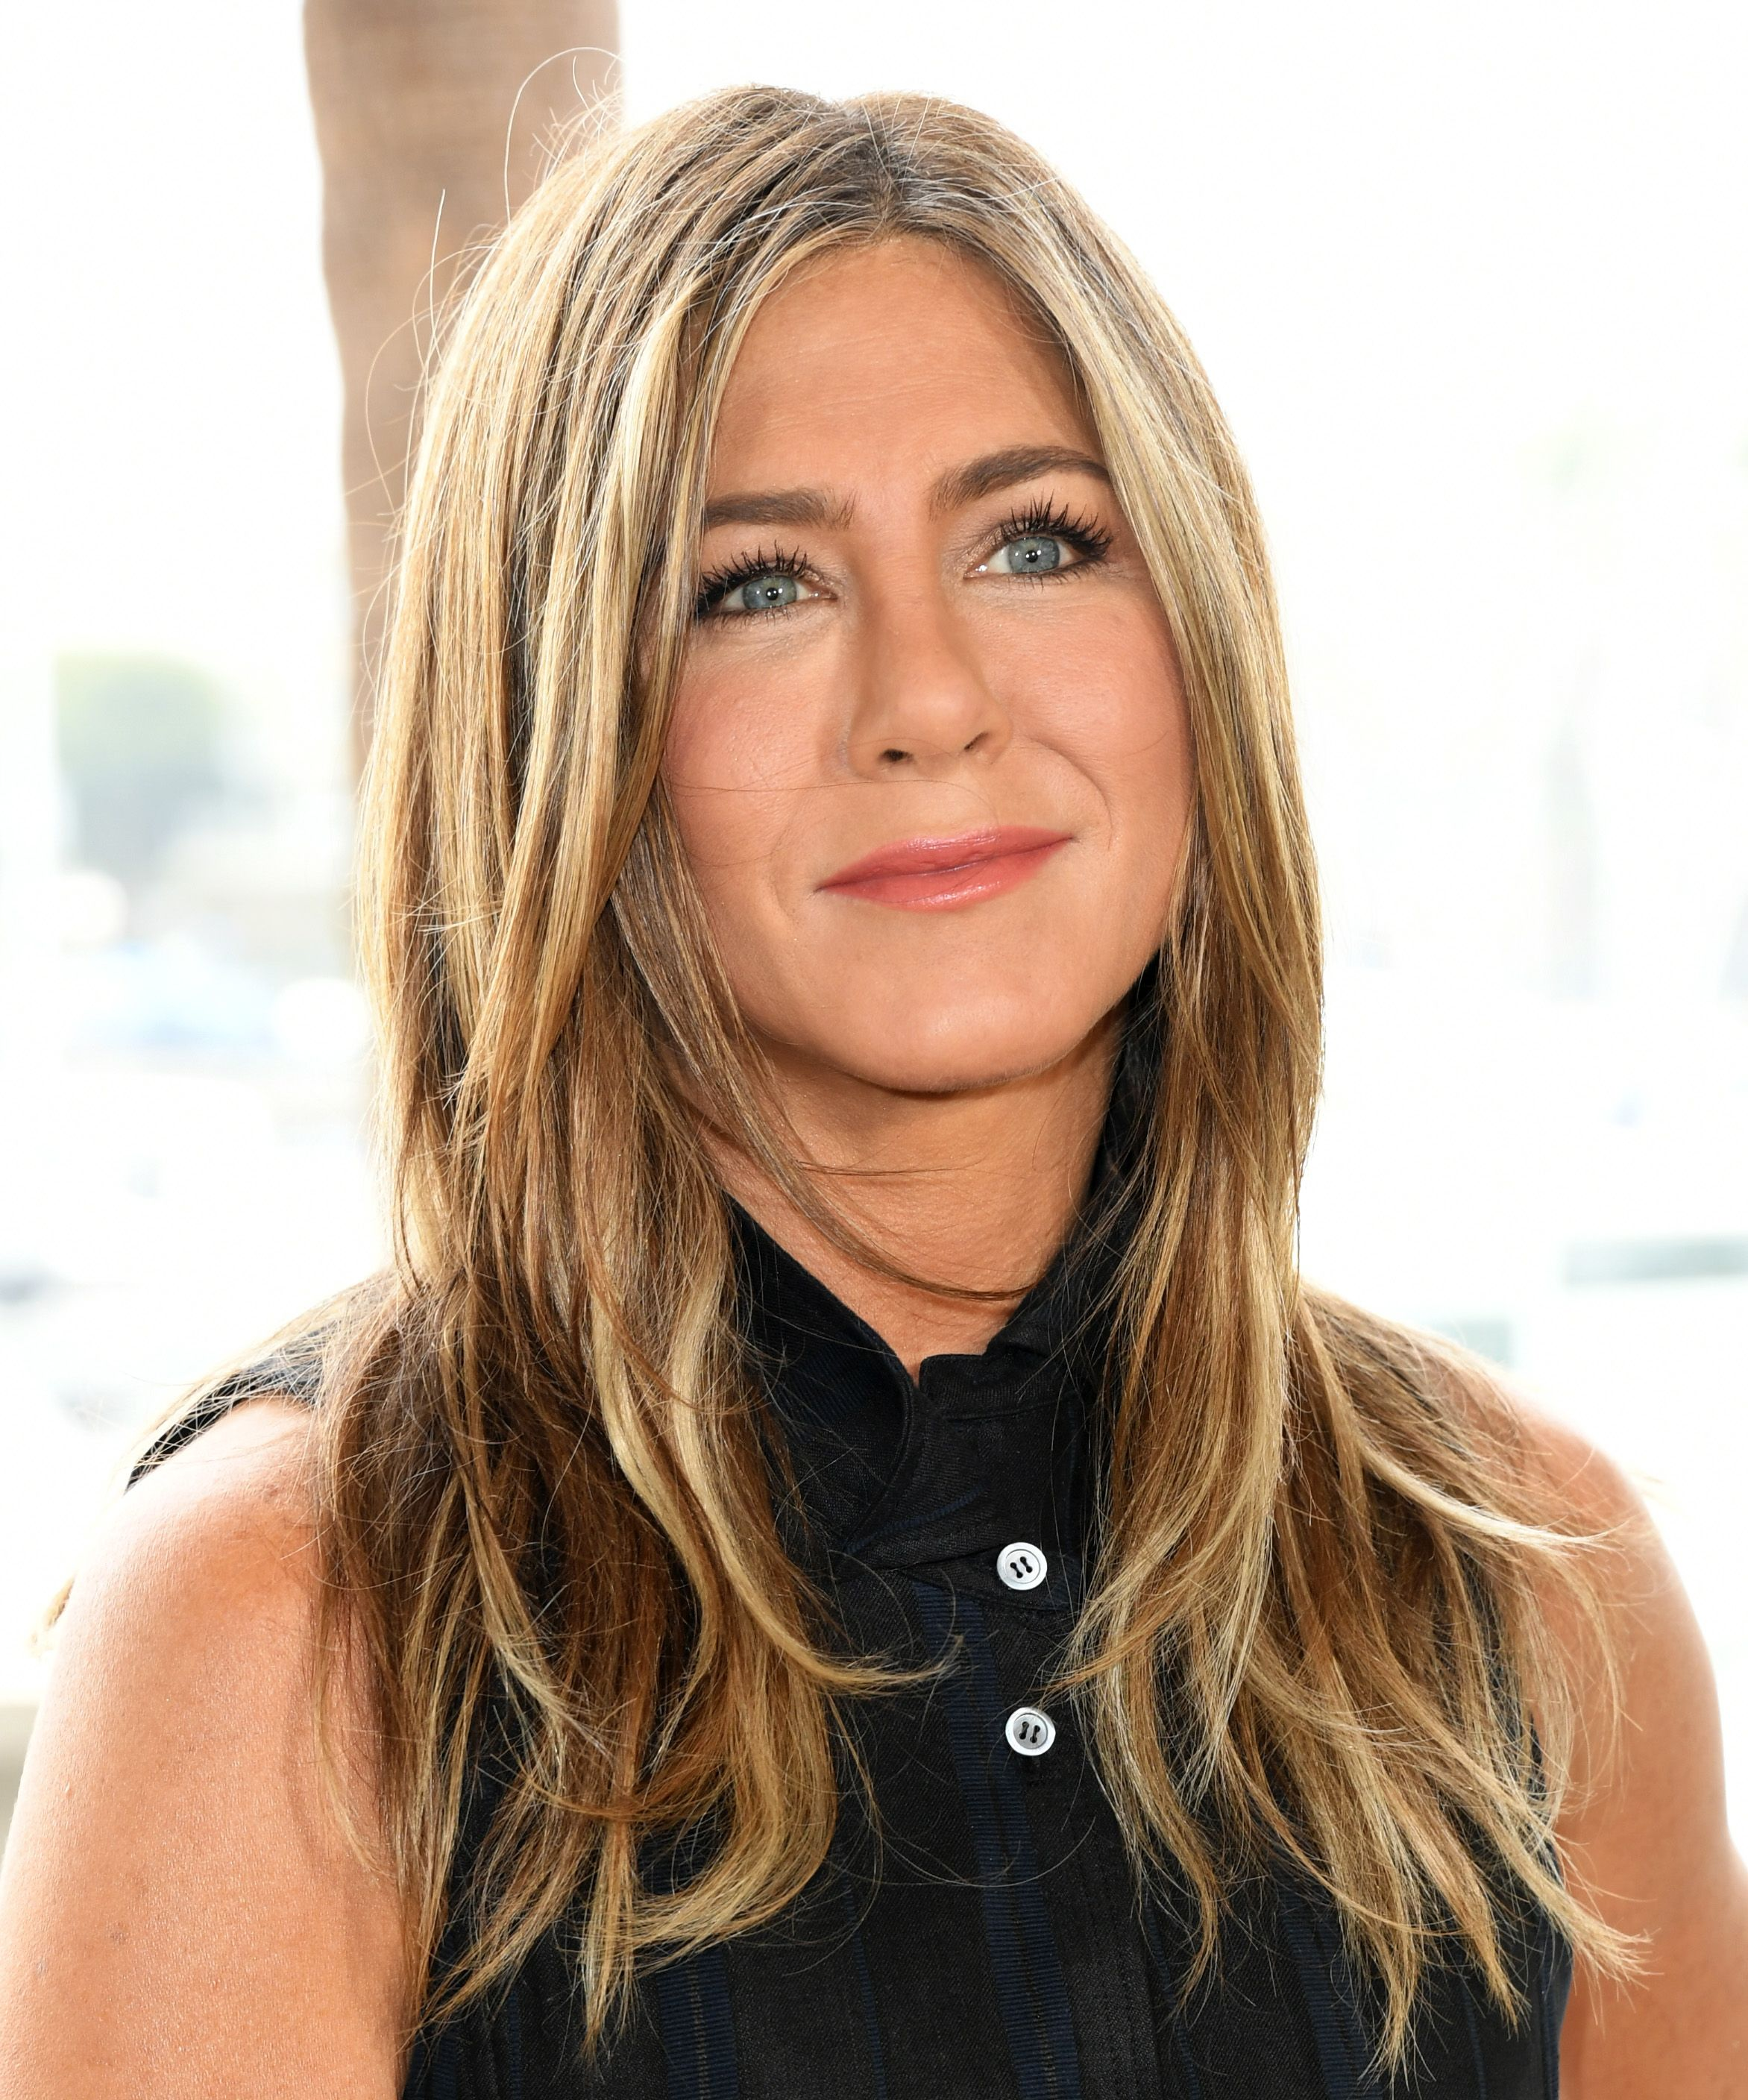 Jennifer Aniston 'Ordered to Lose 30lbs' Before Landing Friends Role